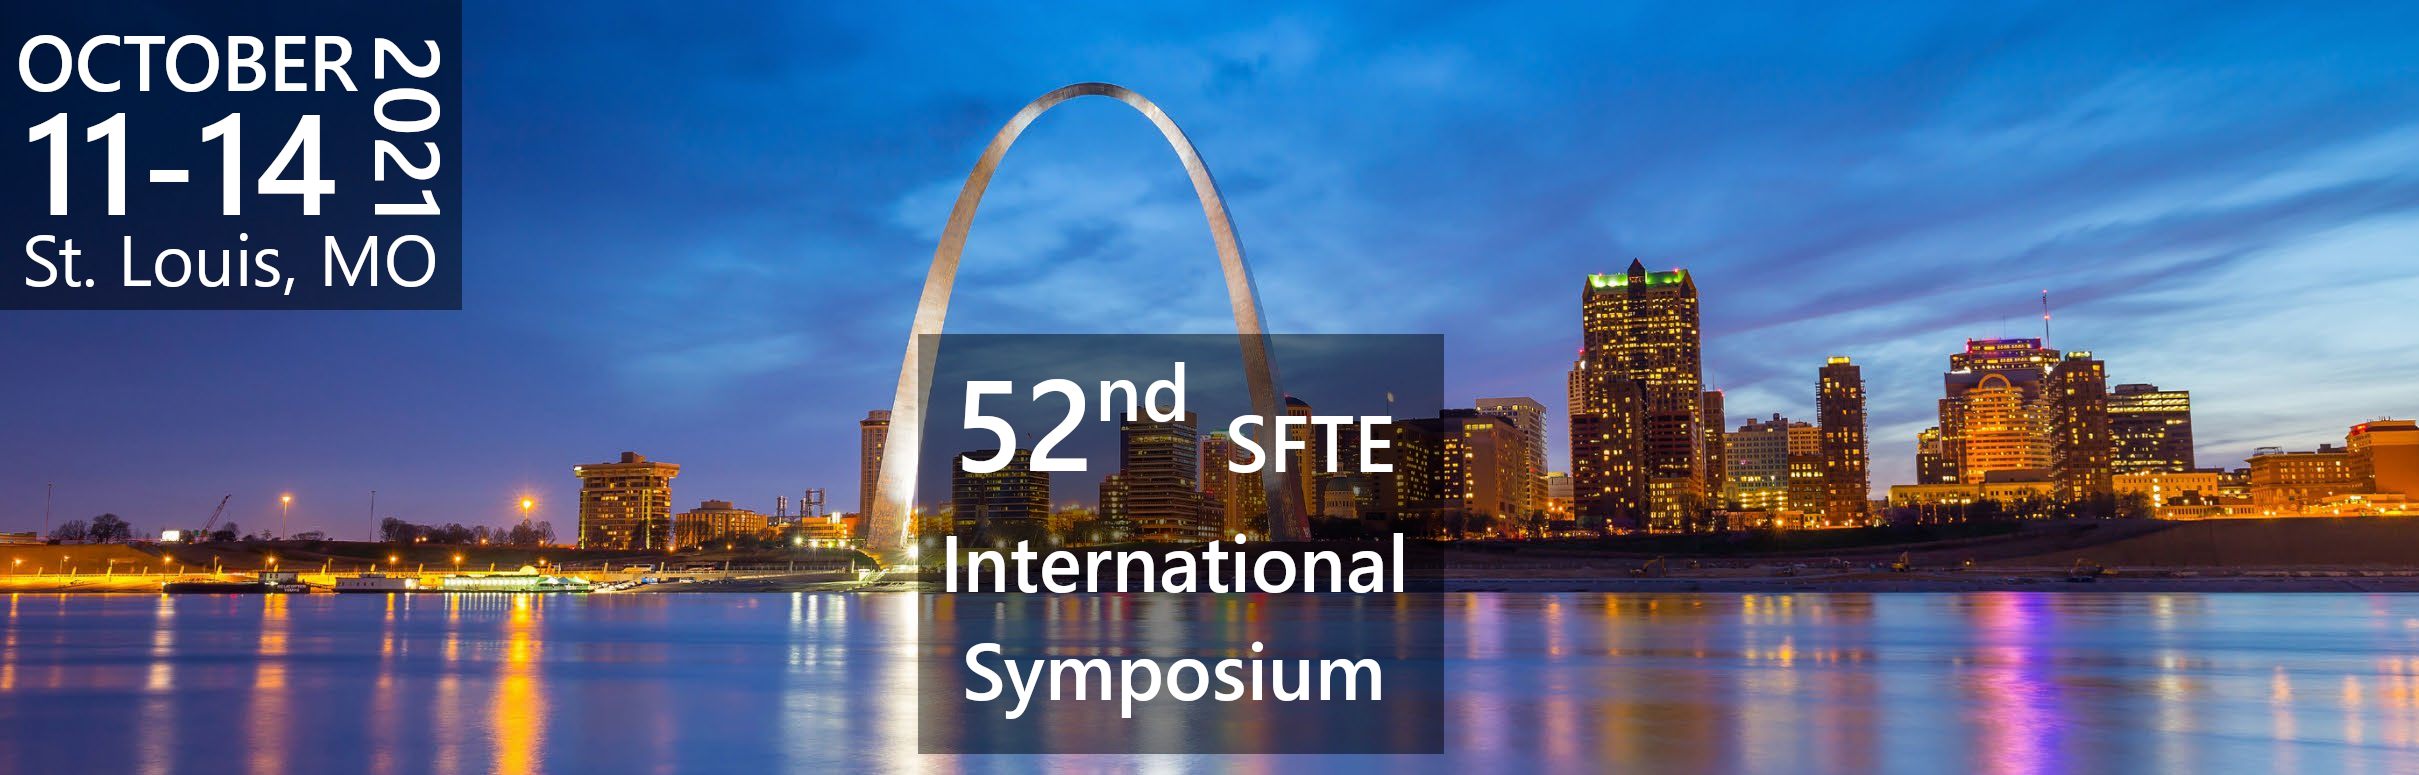 52nd SFTE International Symposium - October 11-14, 2021 - St. Louis, MO